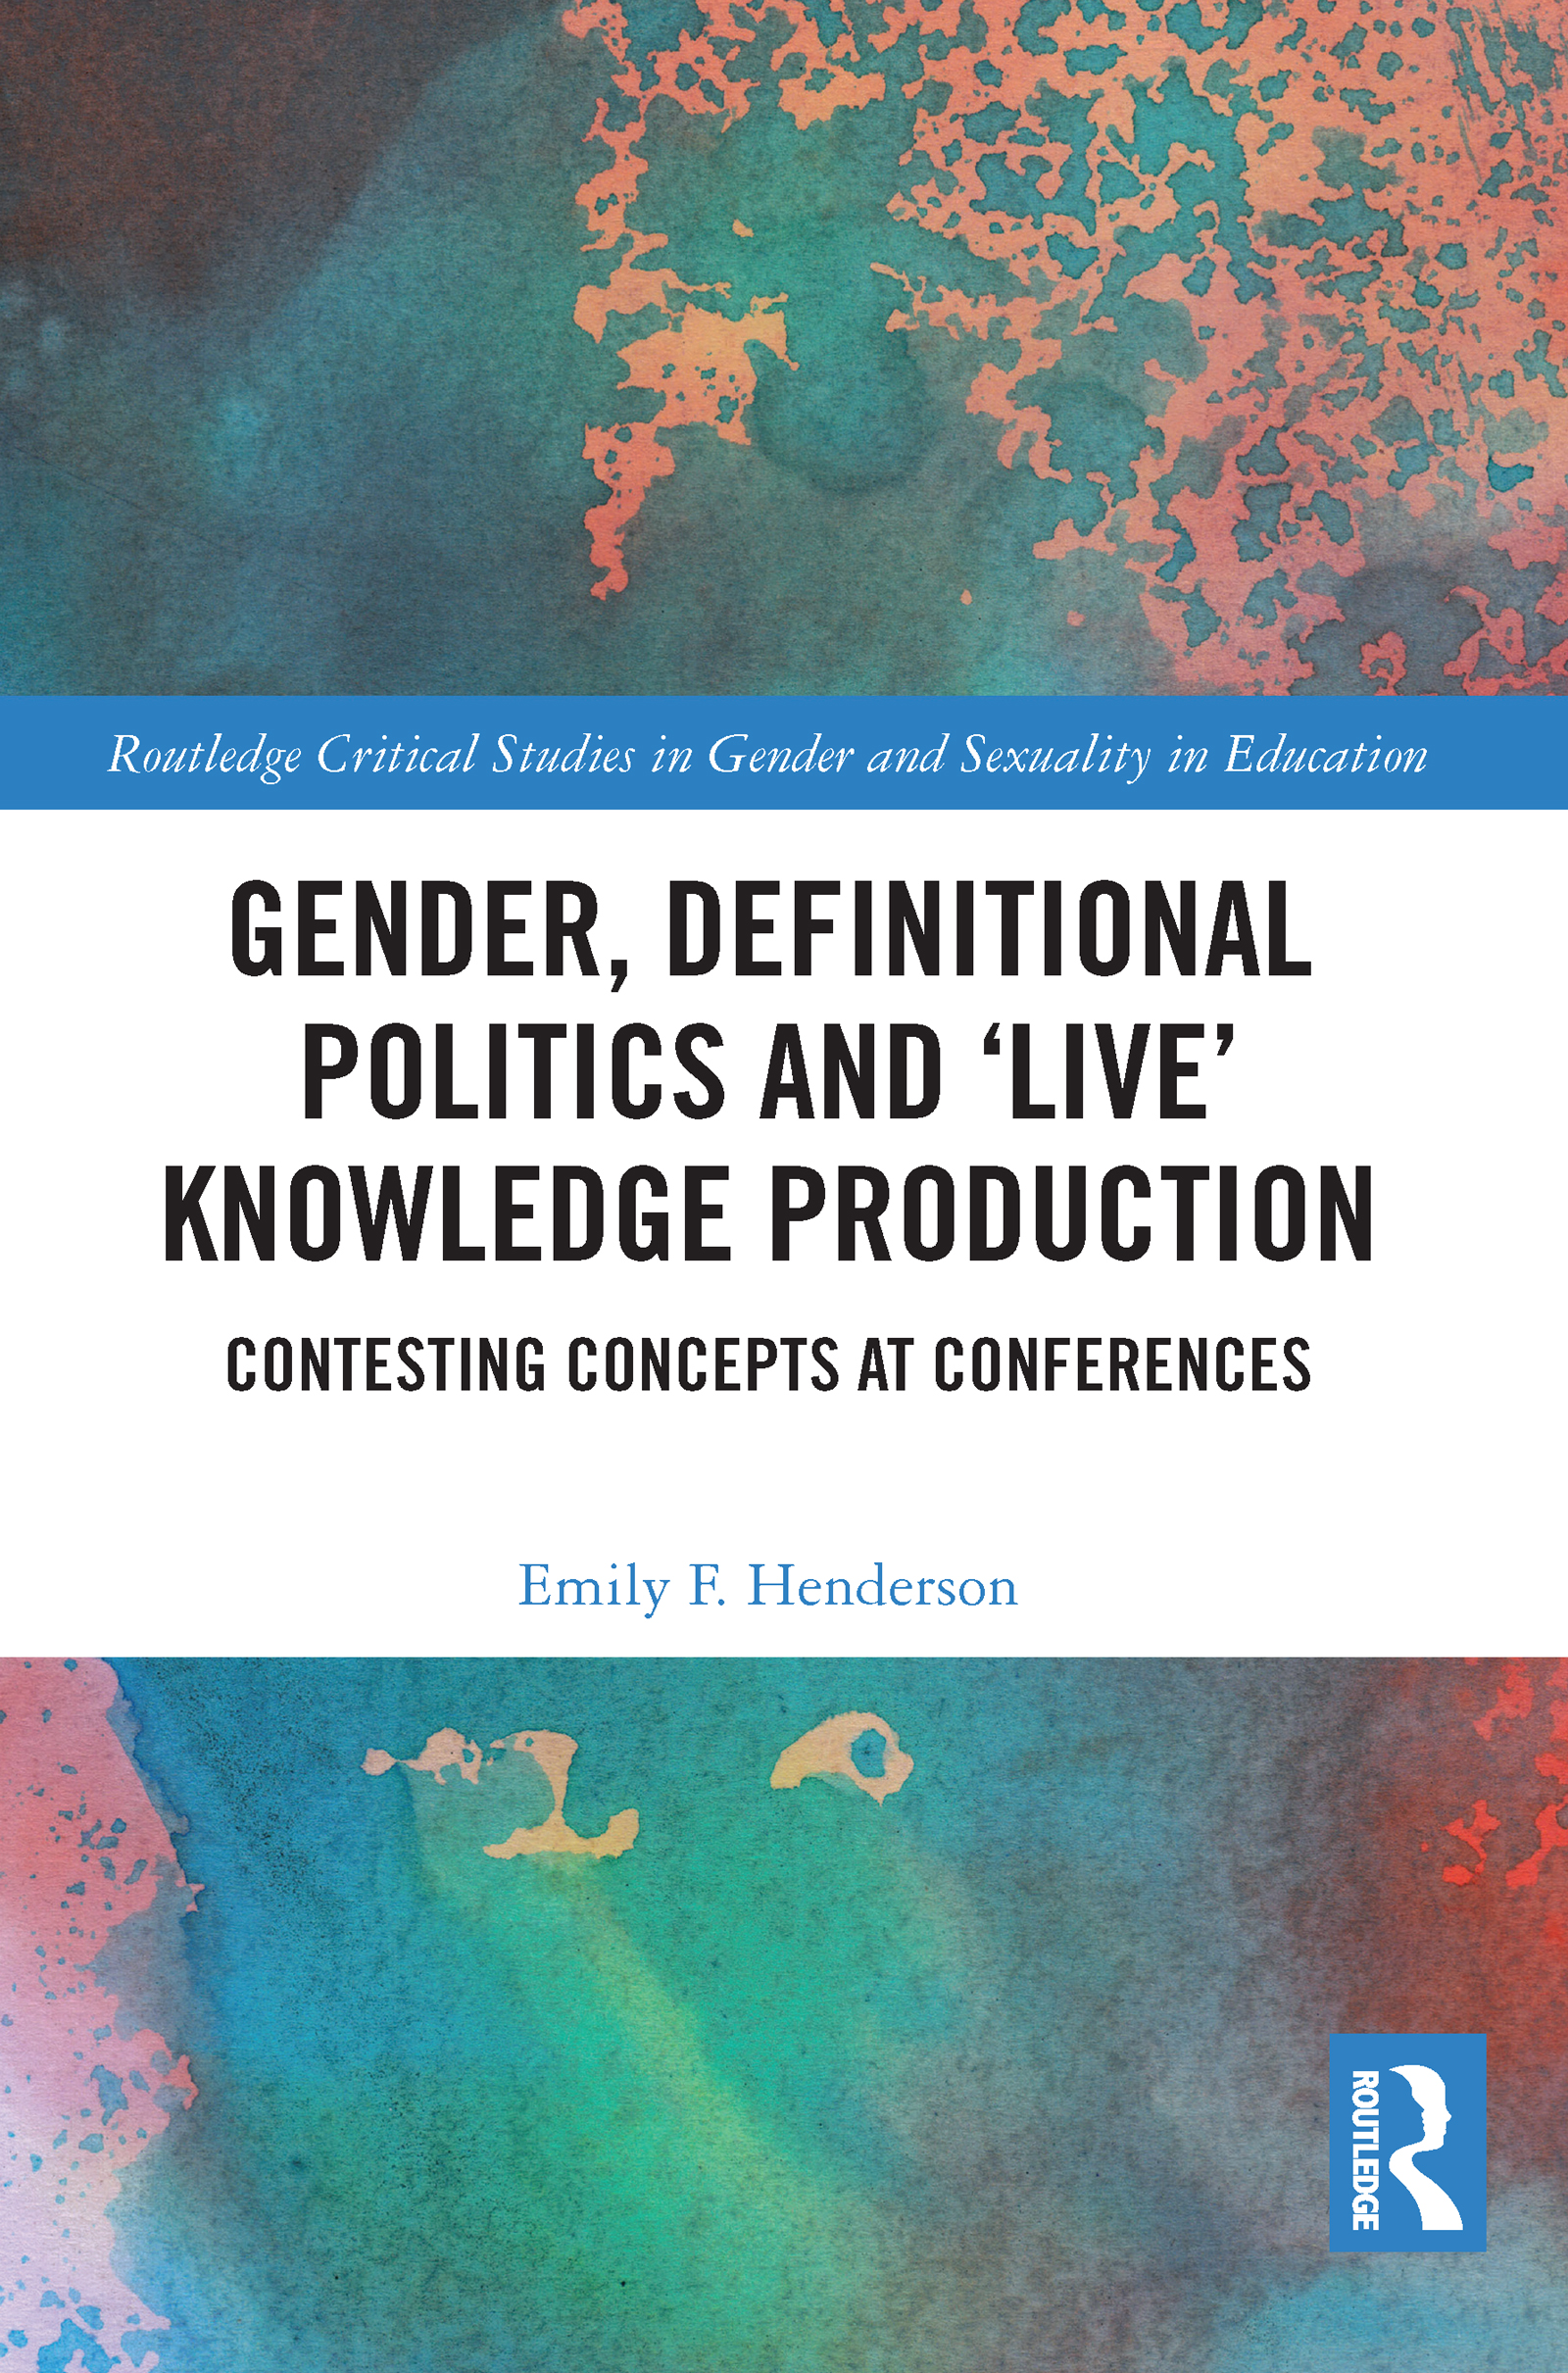 Gender, Definitional Politics and 'Live' Knowledge Production